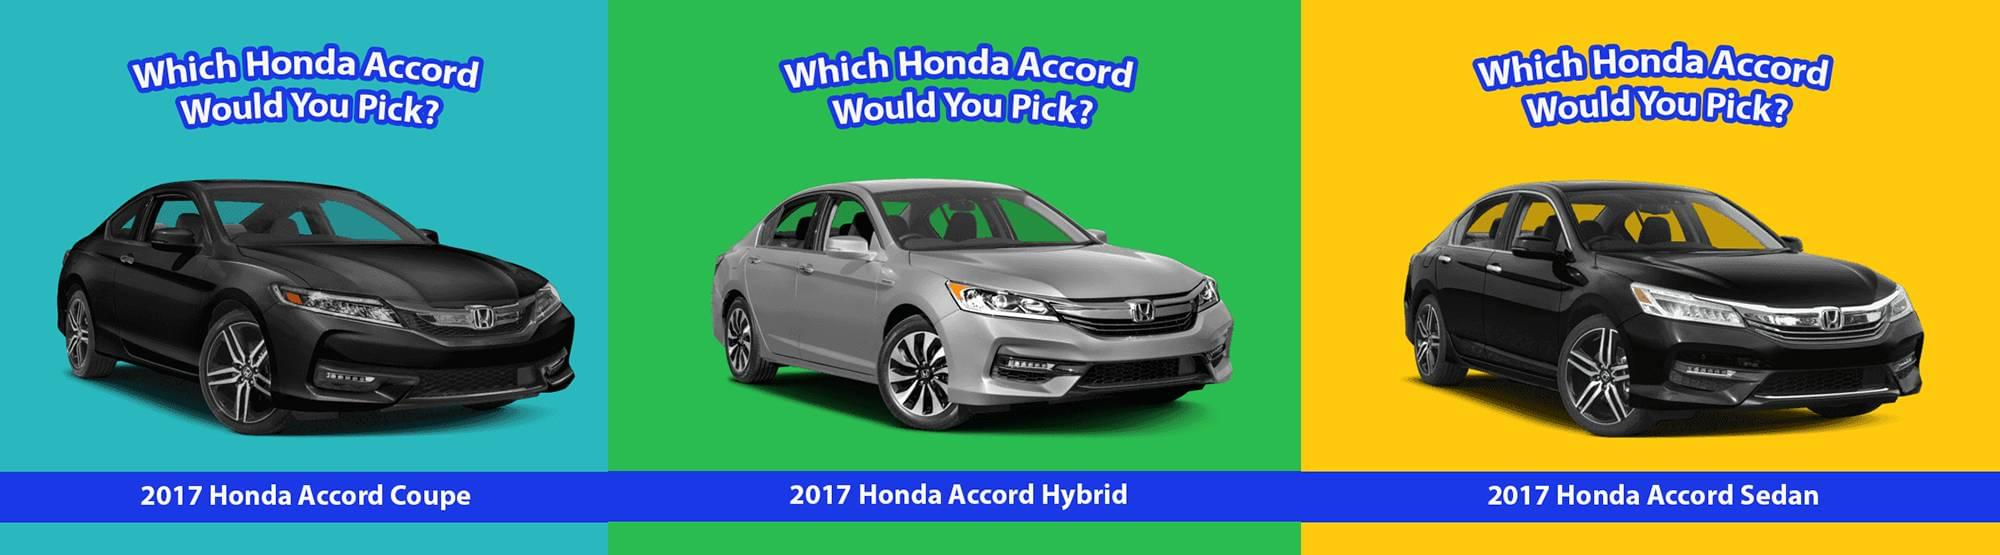 Which Accord would you pick Banner